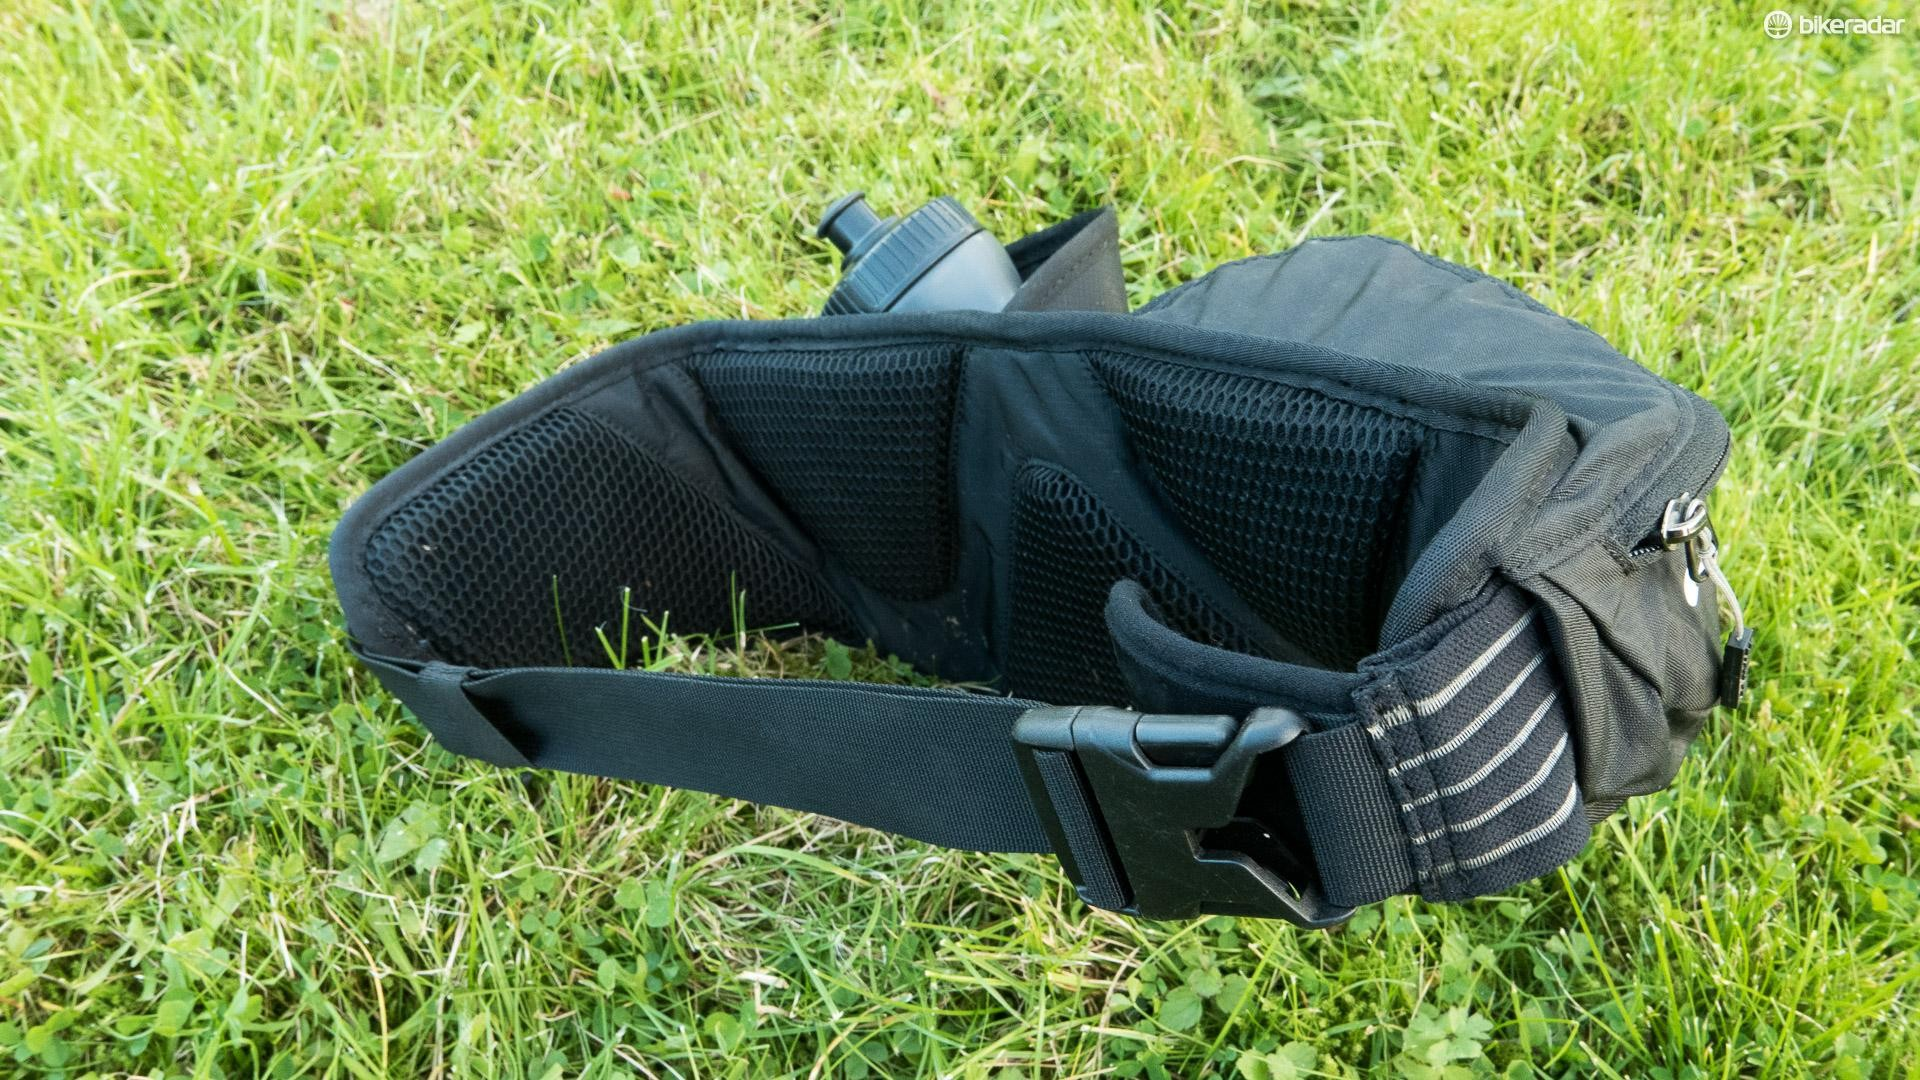 fb144eaf16f The contoured back pad helps the pack sit nicely without bouncing about